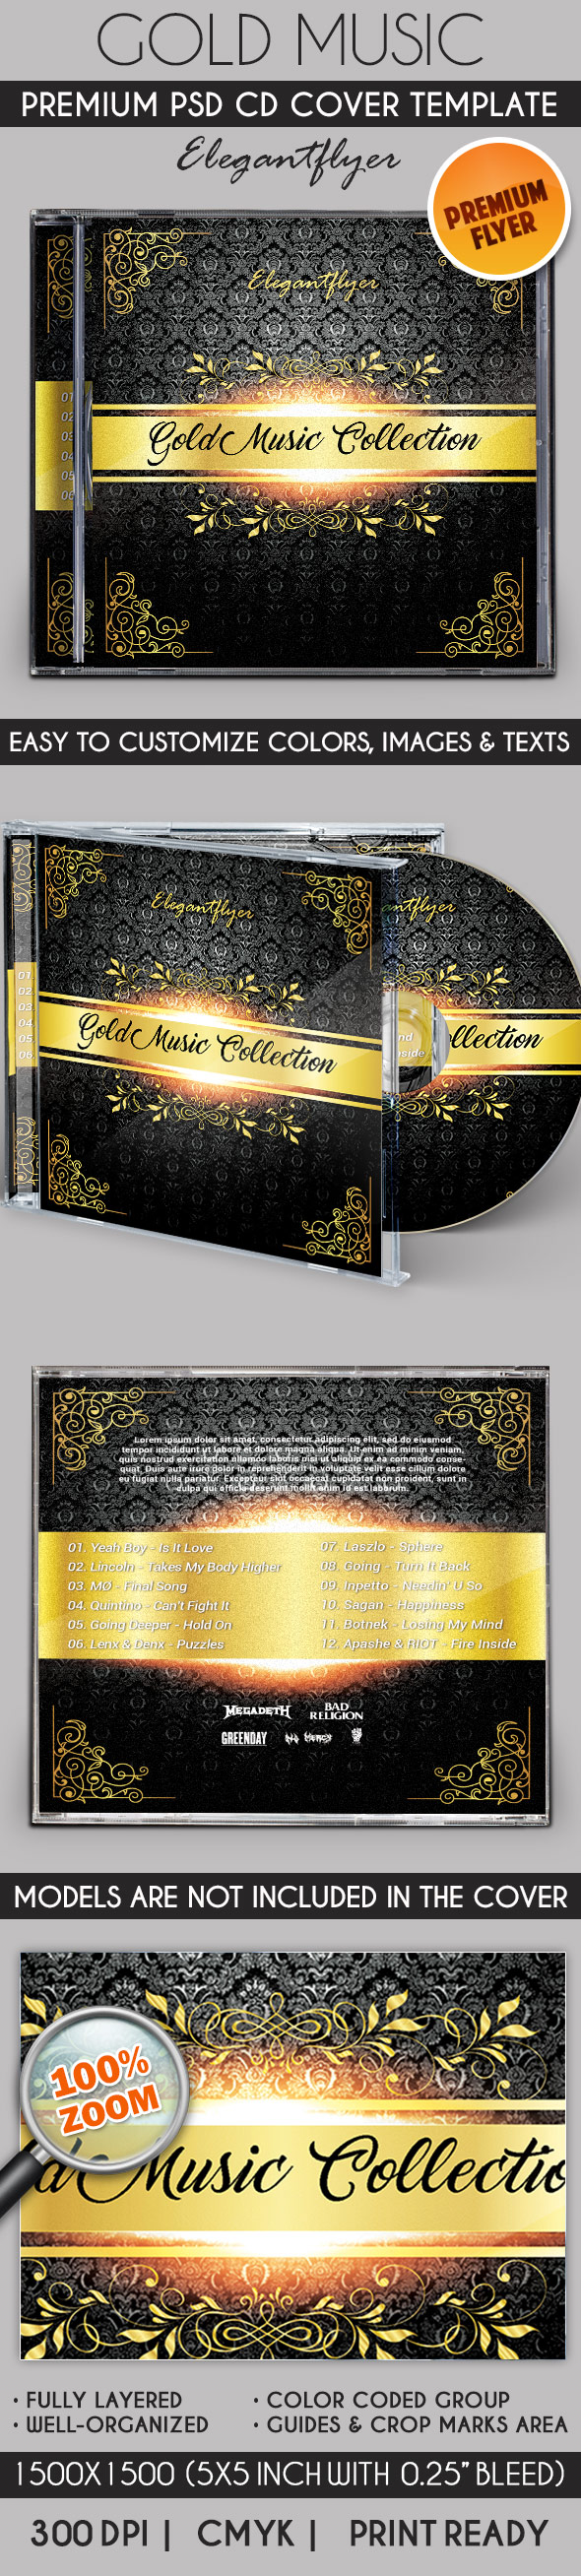 Gold Music Collection – Premium CD Cover PSD Template